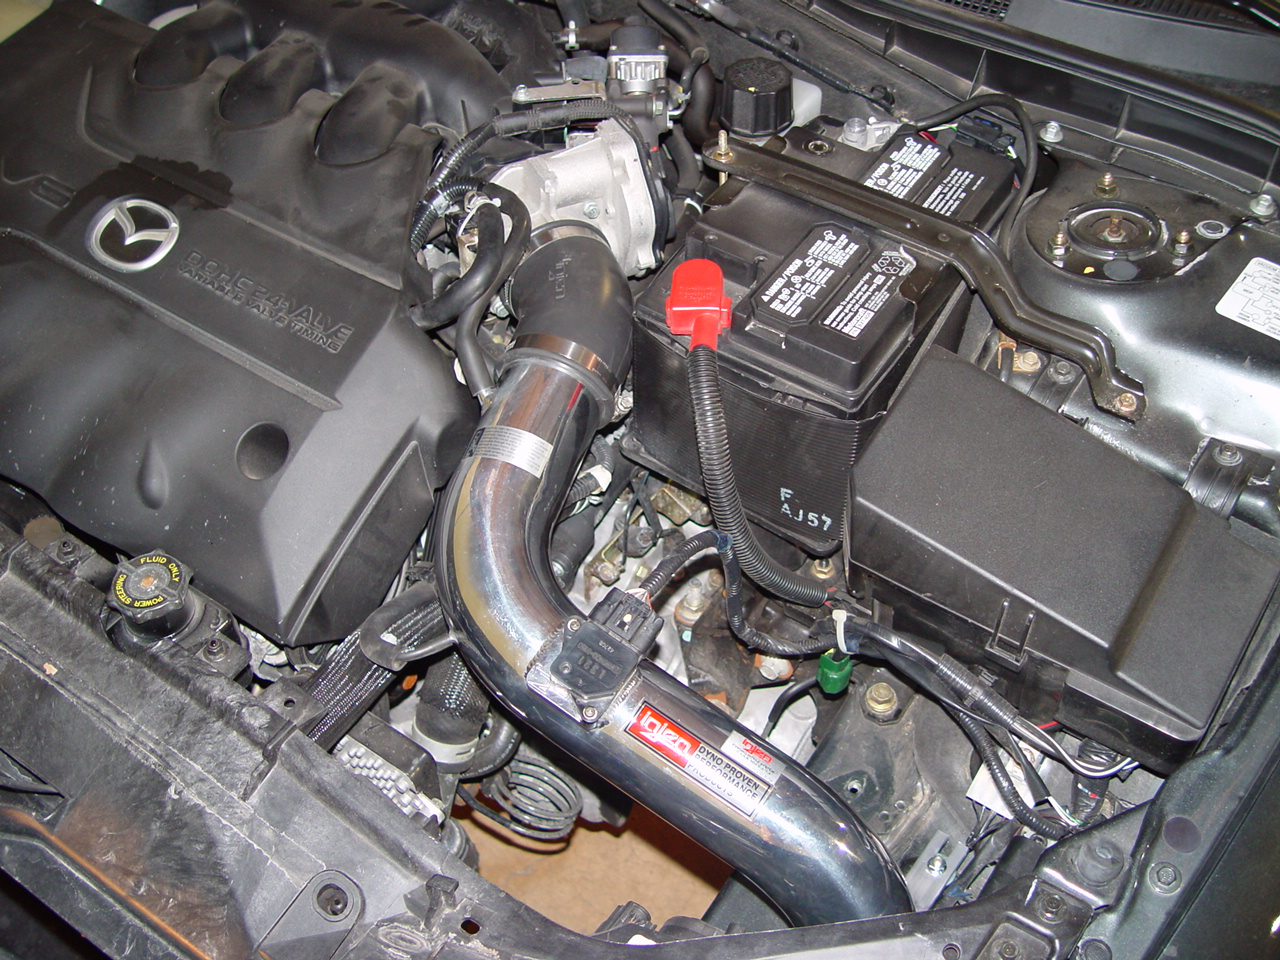 Thecarhack September 2006 Archives Mazda 6 Engine Diagram Now That More Air Is Coming Into The We Focused On Get It All Back Out Again Went To Our Friends At Injen And Purchased A Great Looking